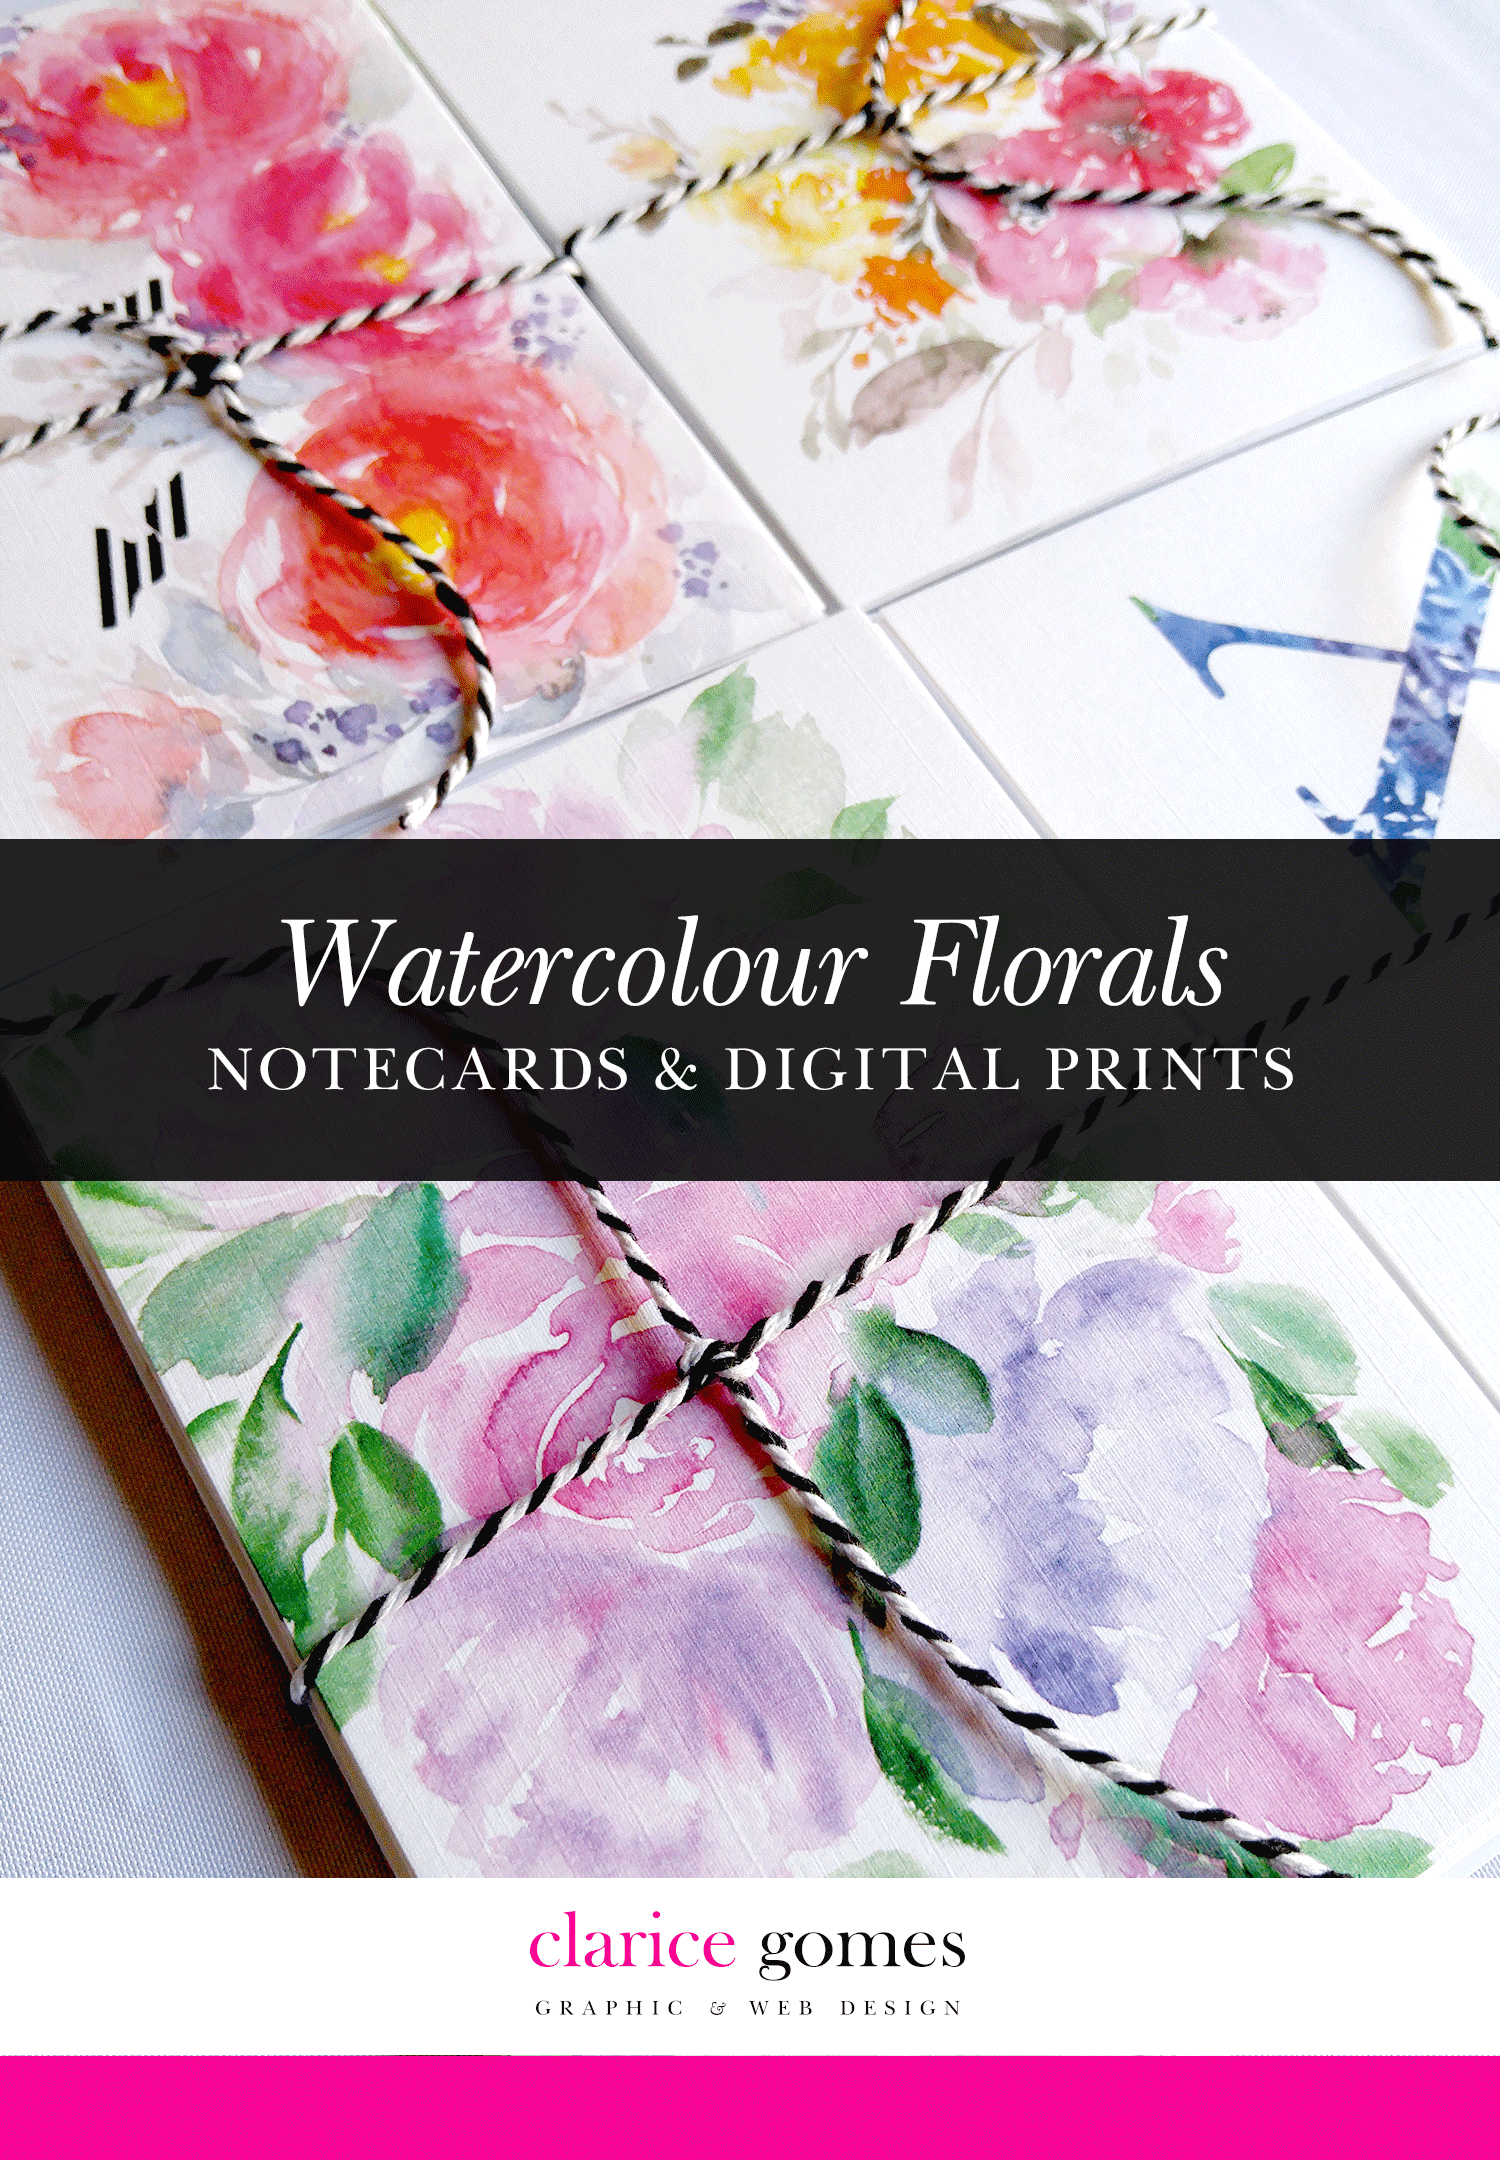 clarice gomes watercolour florals